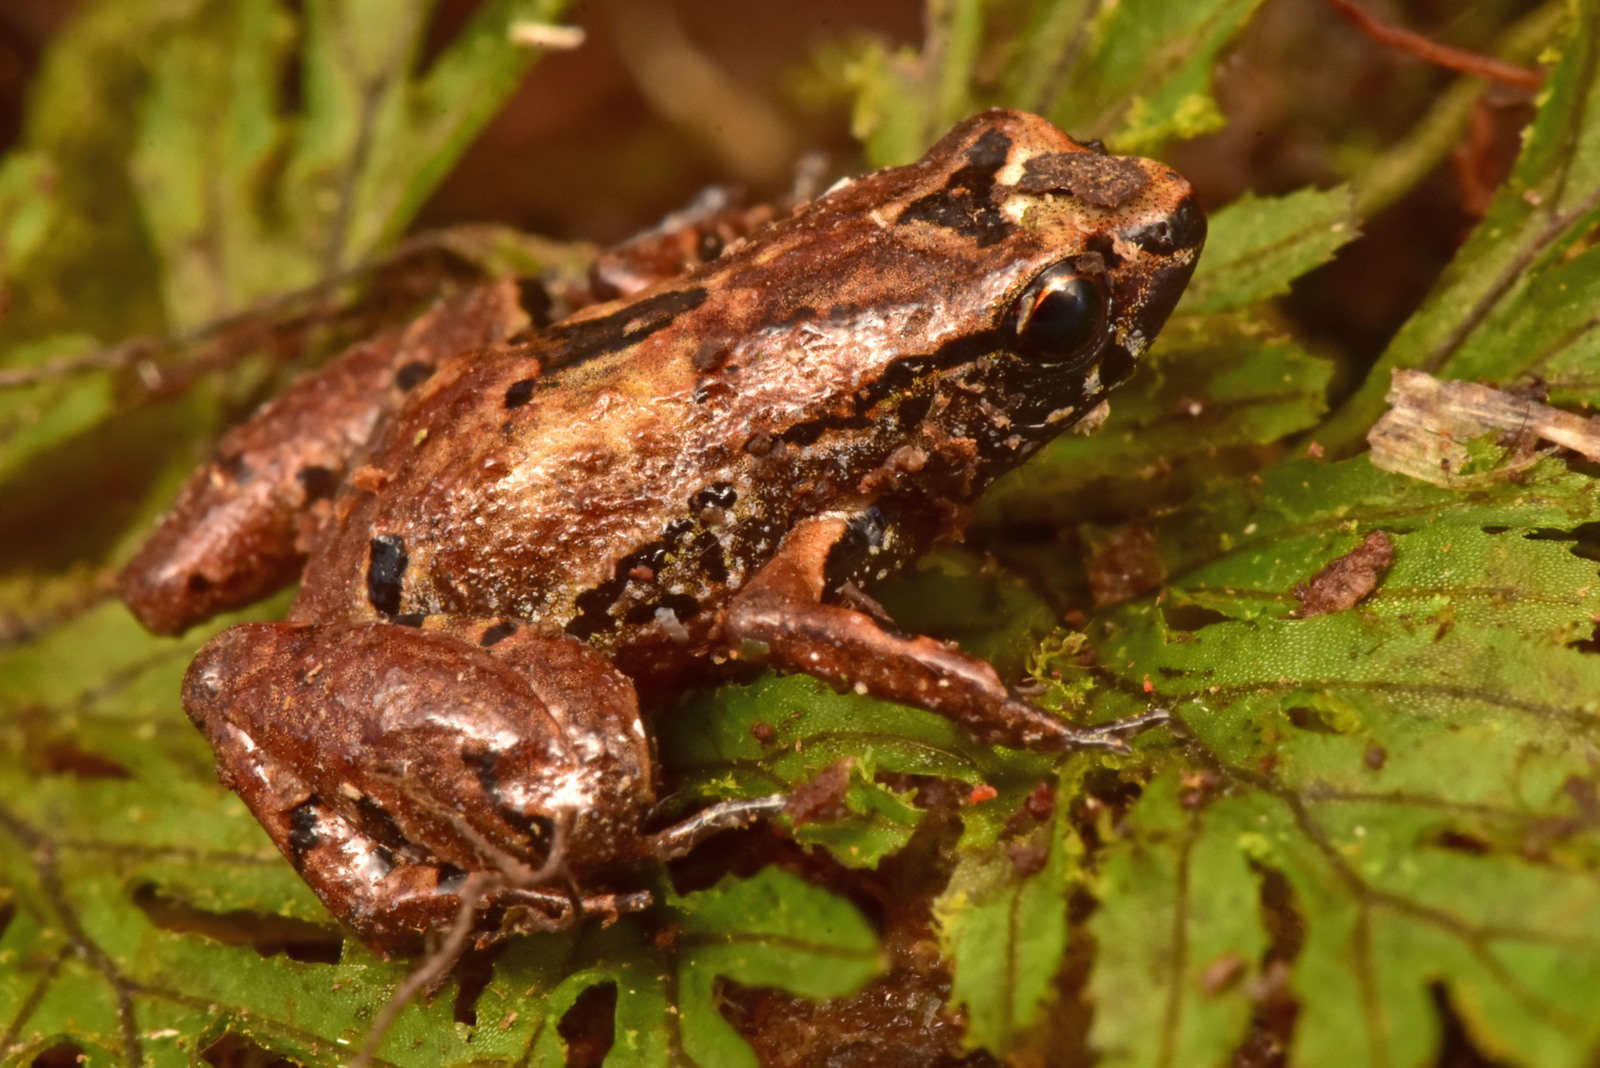 The lilliputian frog (Noblella sp. nov.) is among the tiniest in the world, measuring around 10 millimeters (0.4 inches), about the size of an aspirin tablet. The small amphibians live in tunnels beneath the moss and humus. Despite their frequent calls the researchers said they are very difficult to track. Image © Trond Larsen